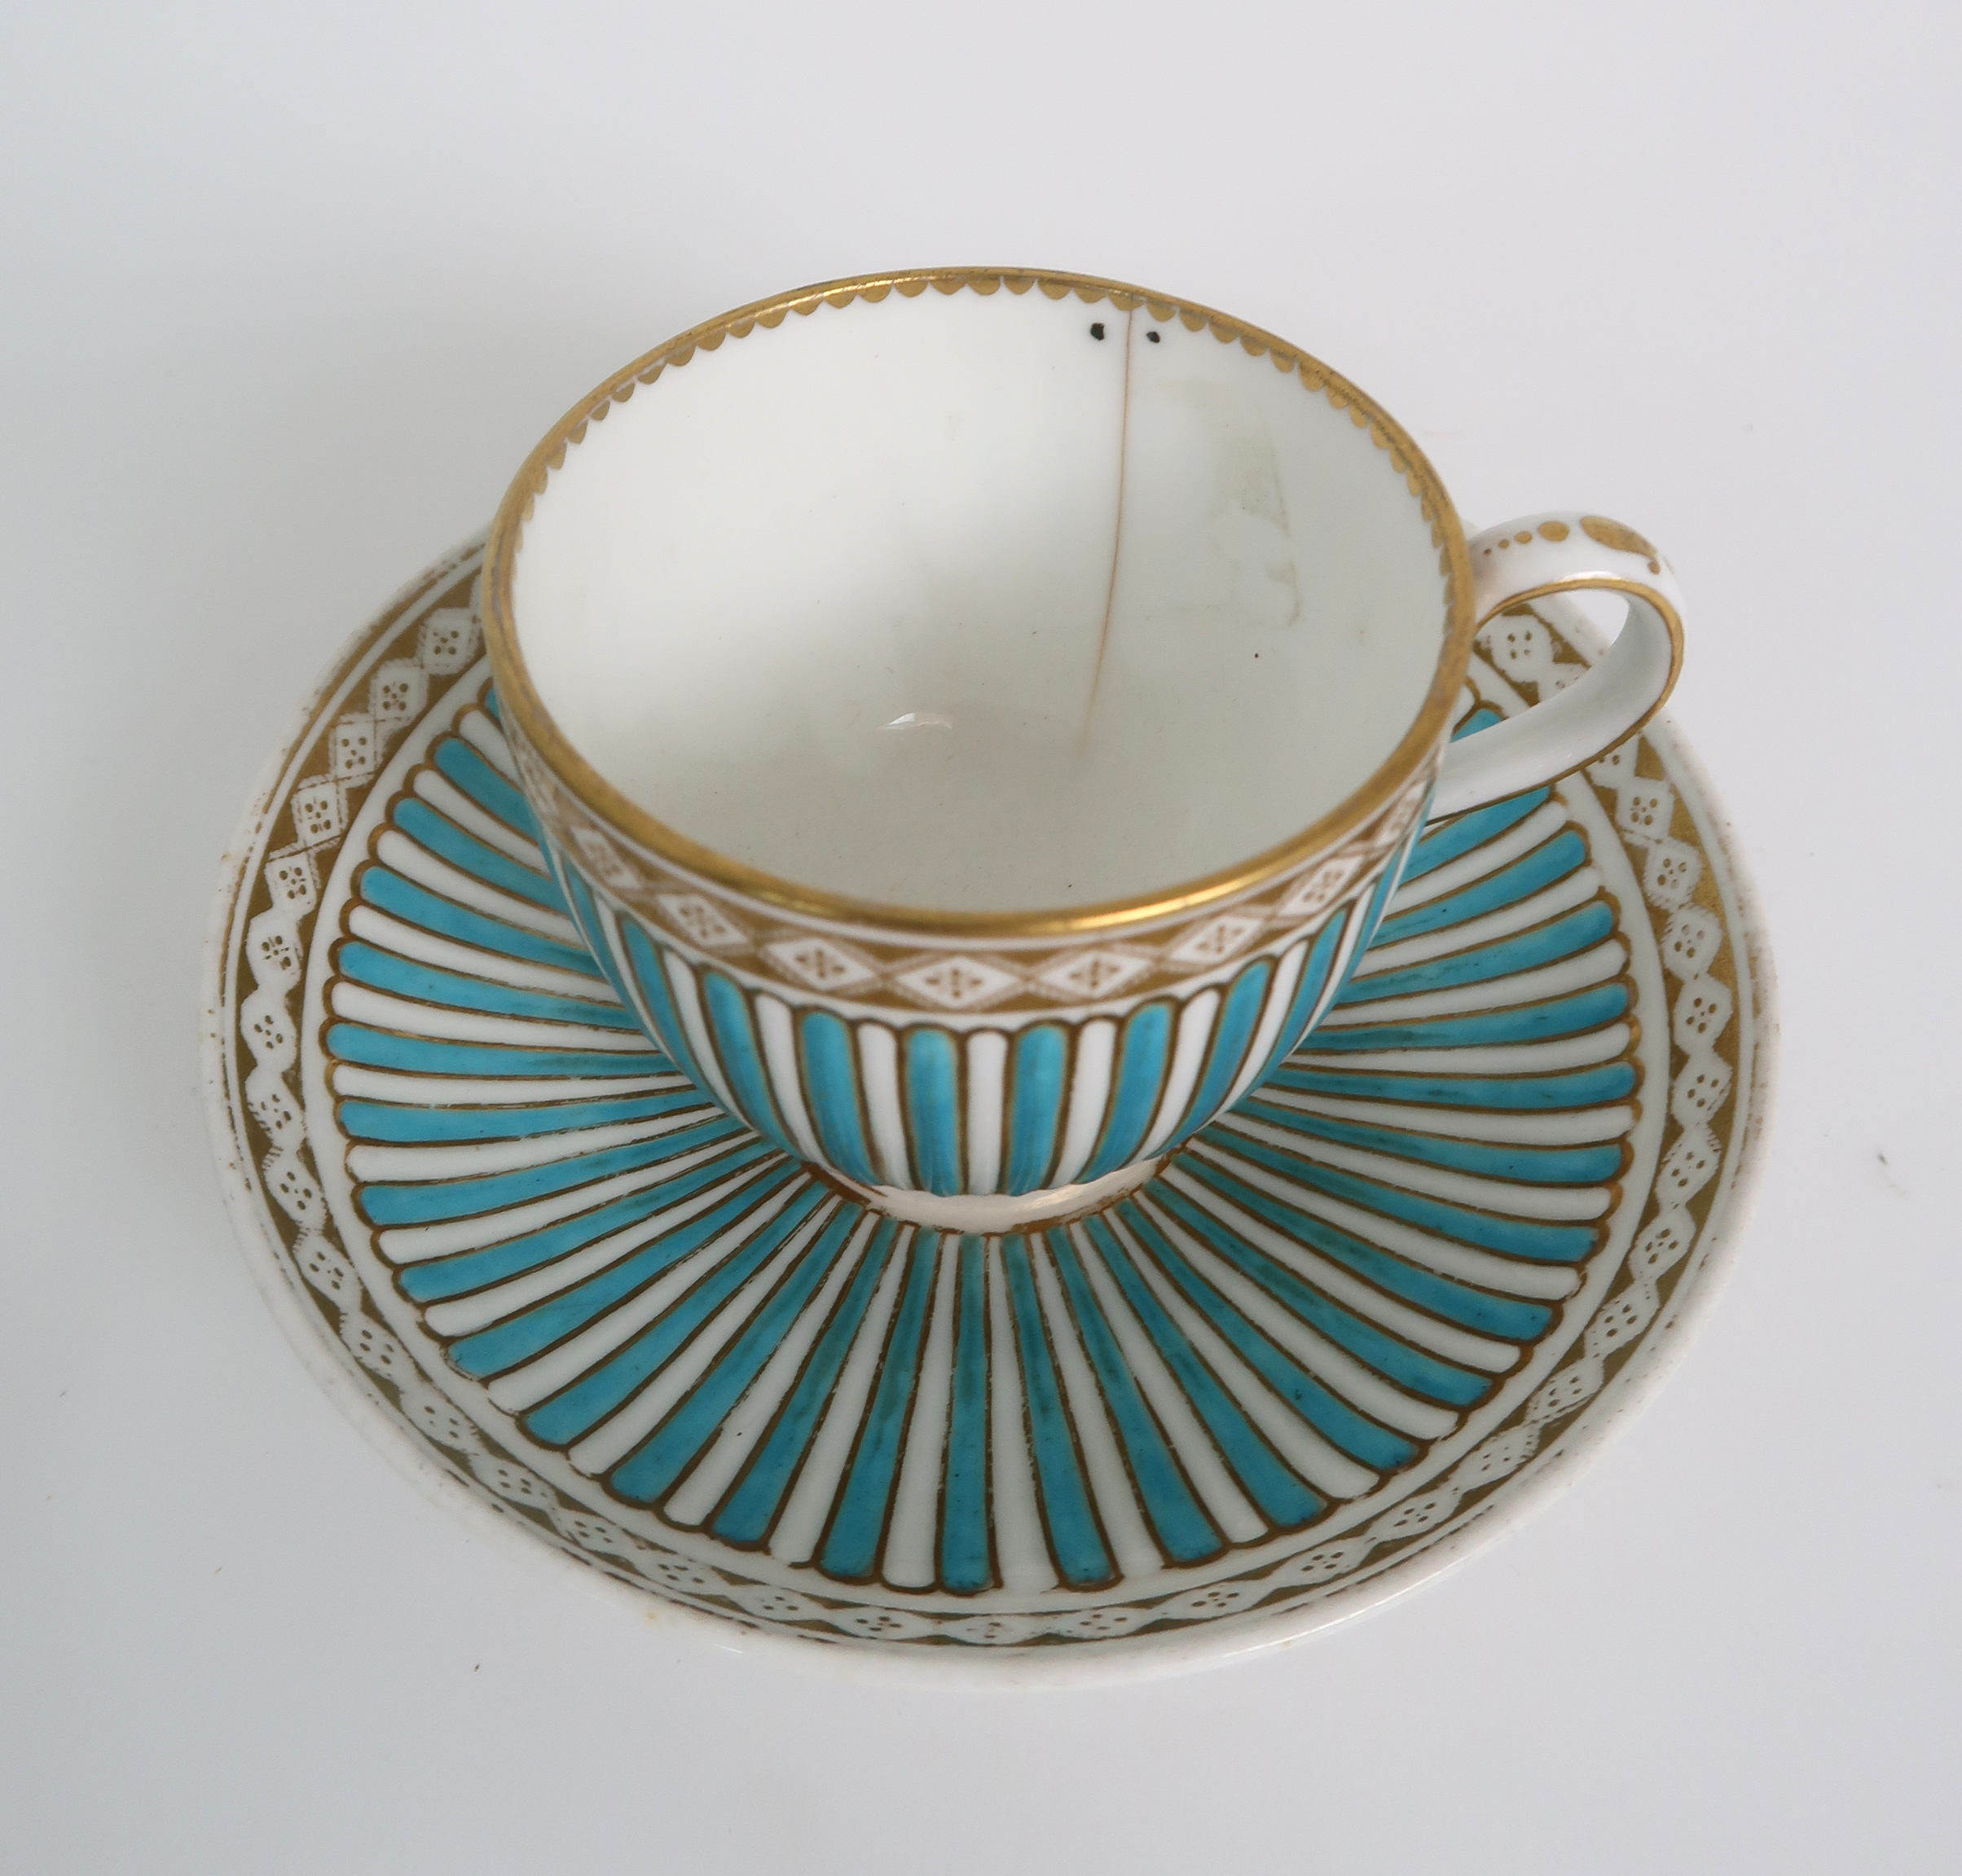 A COLLECTION OF 19TH CENTURY ENGLISH BLUE AND GILT DECORATED TEA AND COFFEE WARES including a - Image 3 of 23